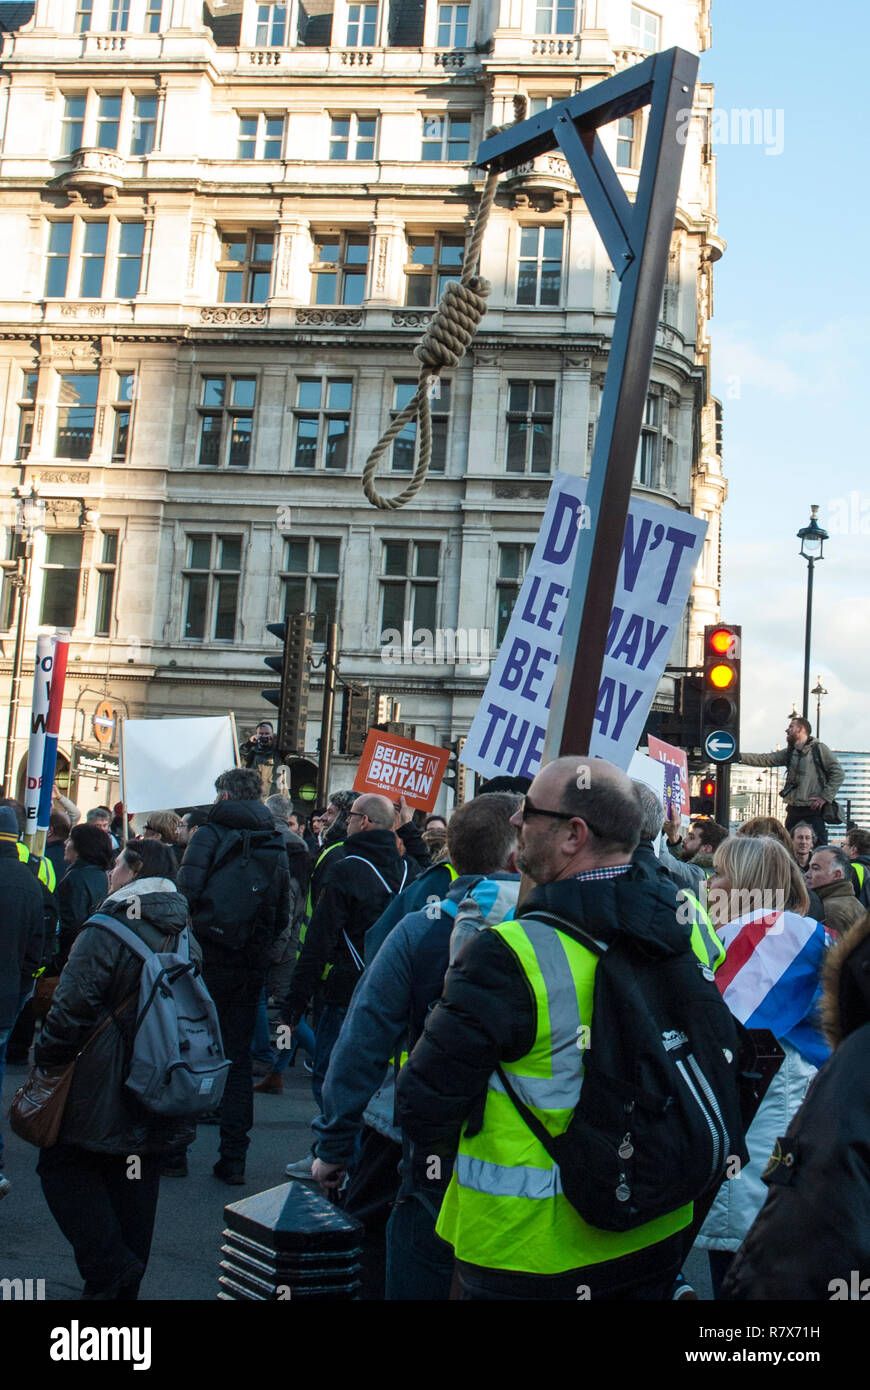 Pro Brexit national demonstration organised by UKIP as 'Brexit Betrayal'  with a hangmans noose being carried for 'traitor May' - Stock Image